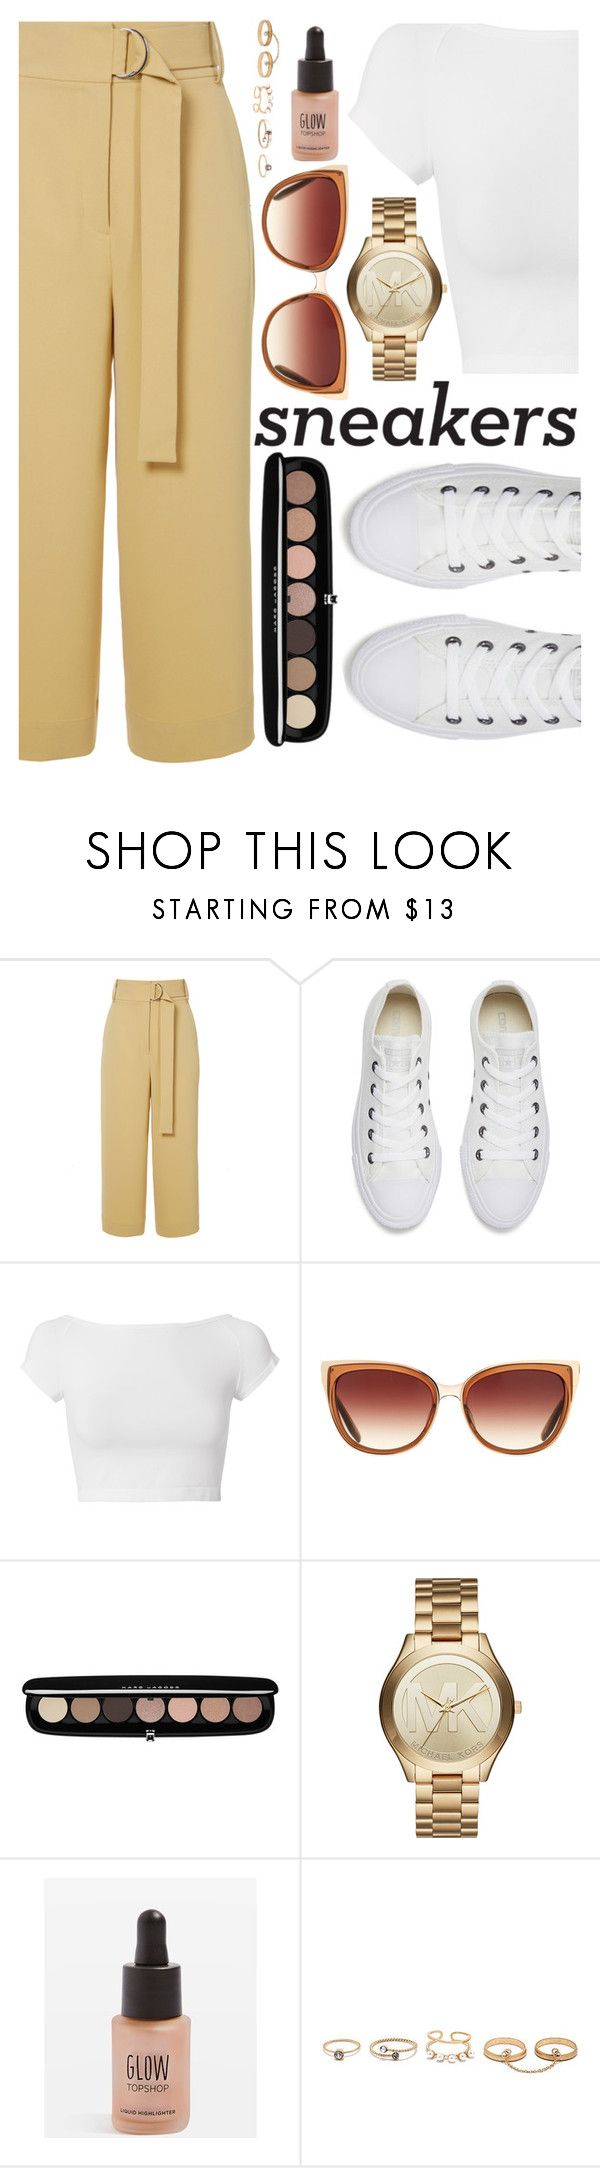 """""""white sneakers"""" by lovedreamfashion ❤ liked on Polyvore featuring TIBI, Converse, Helmut Lang, Barton Perreira, Marc Jacobs, Michael Kors, Topshop, LULUS, white and sneakers"""